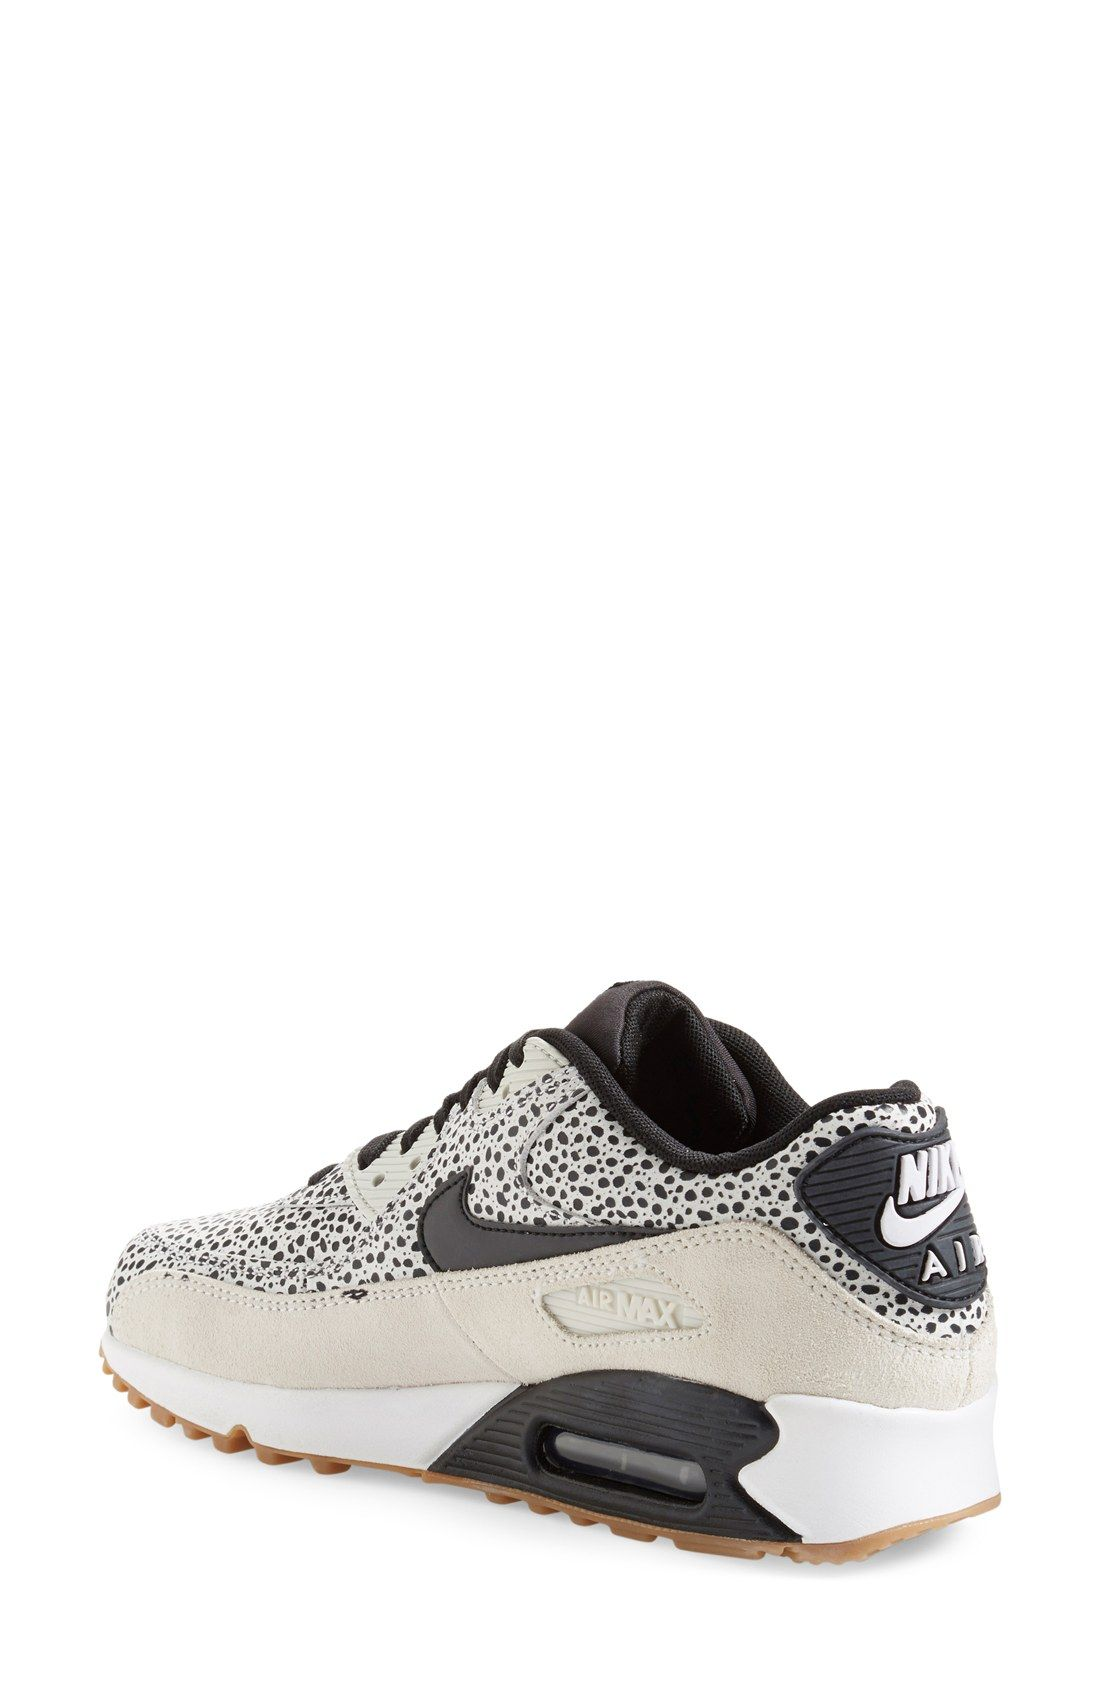 745866092a0e Free shipping and returns on Nike  Air Max 90 - Premium  Sneaker (Women